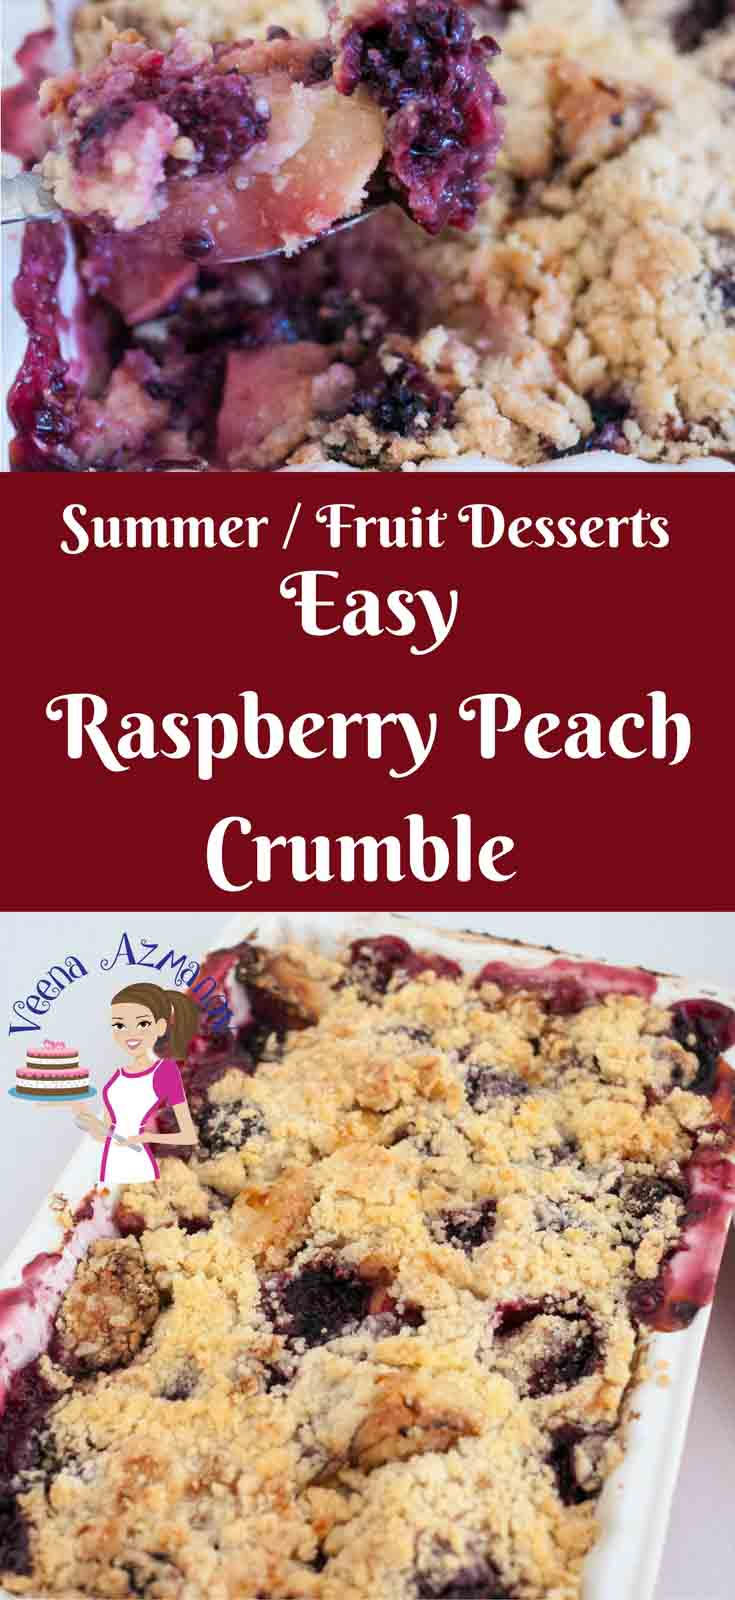 Peach crumble is the ultimate comfort food when it comes to stone fruit desserts. Peaches pair well with most berries and are absolutely divine with raspberry. This raspberry peach crumble is not just simple and easy but also effortless and scrumptious.